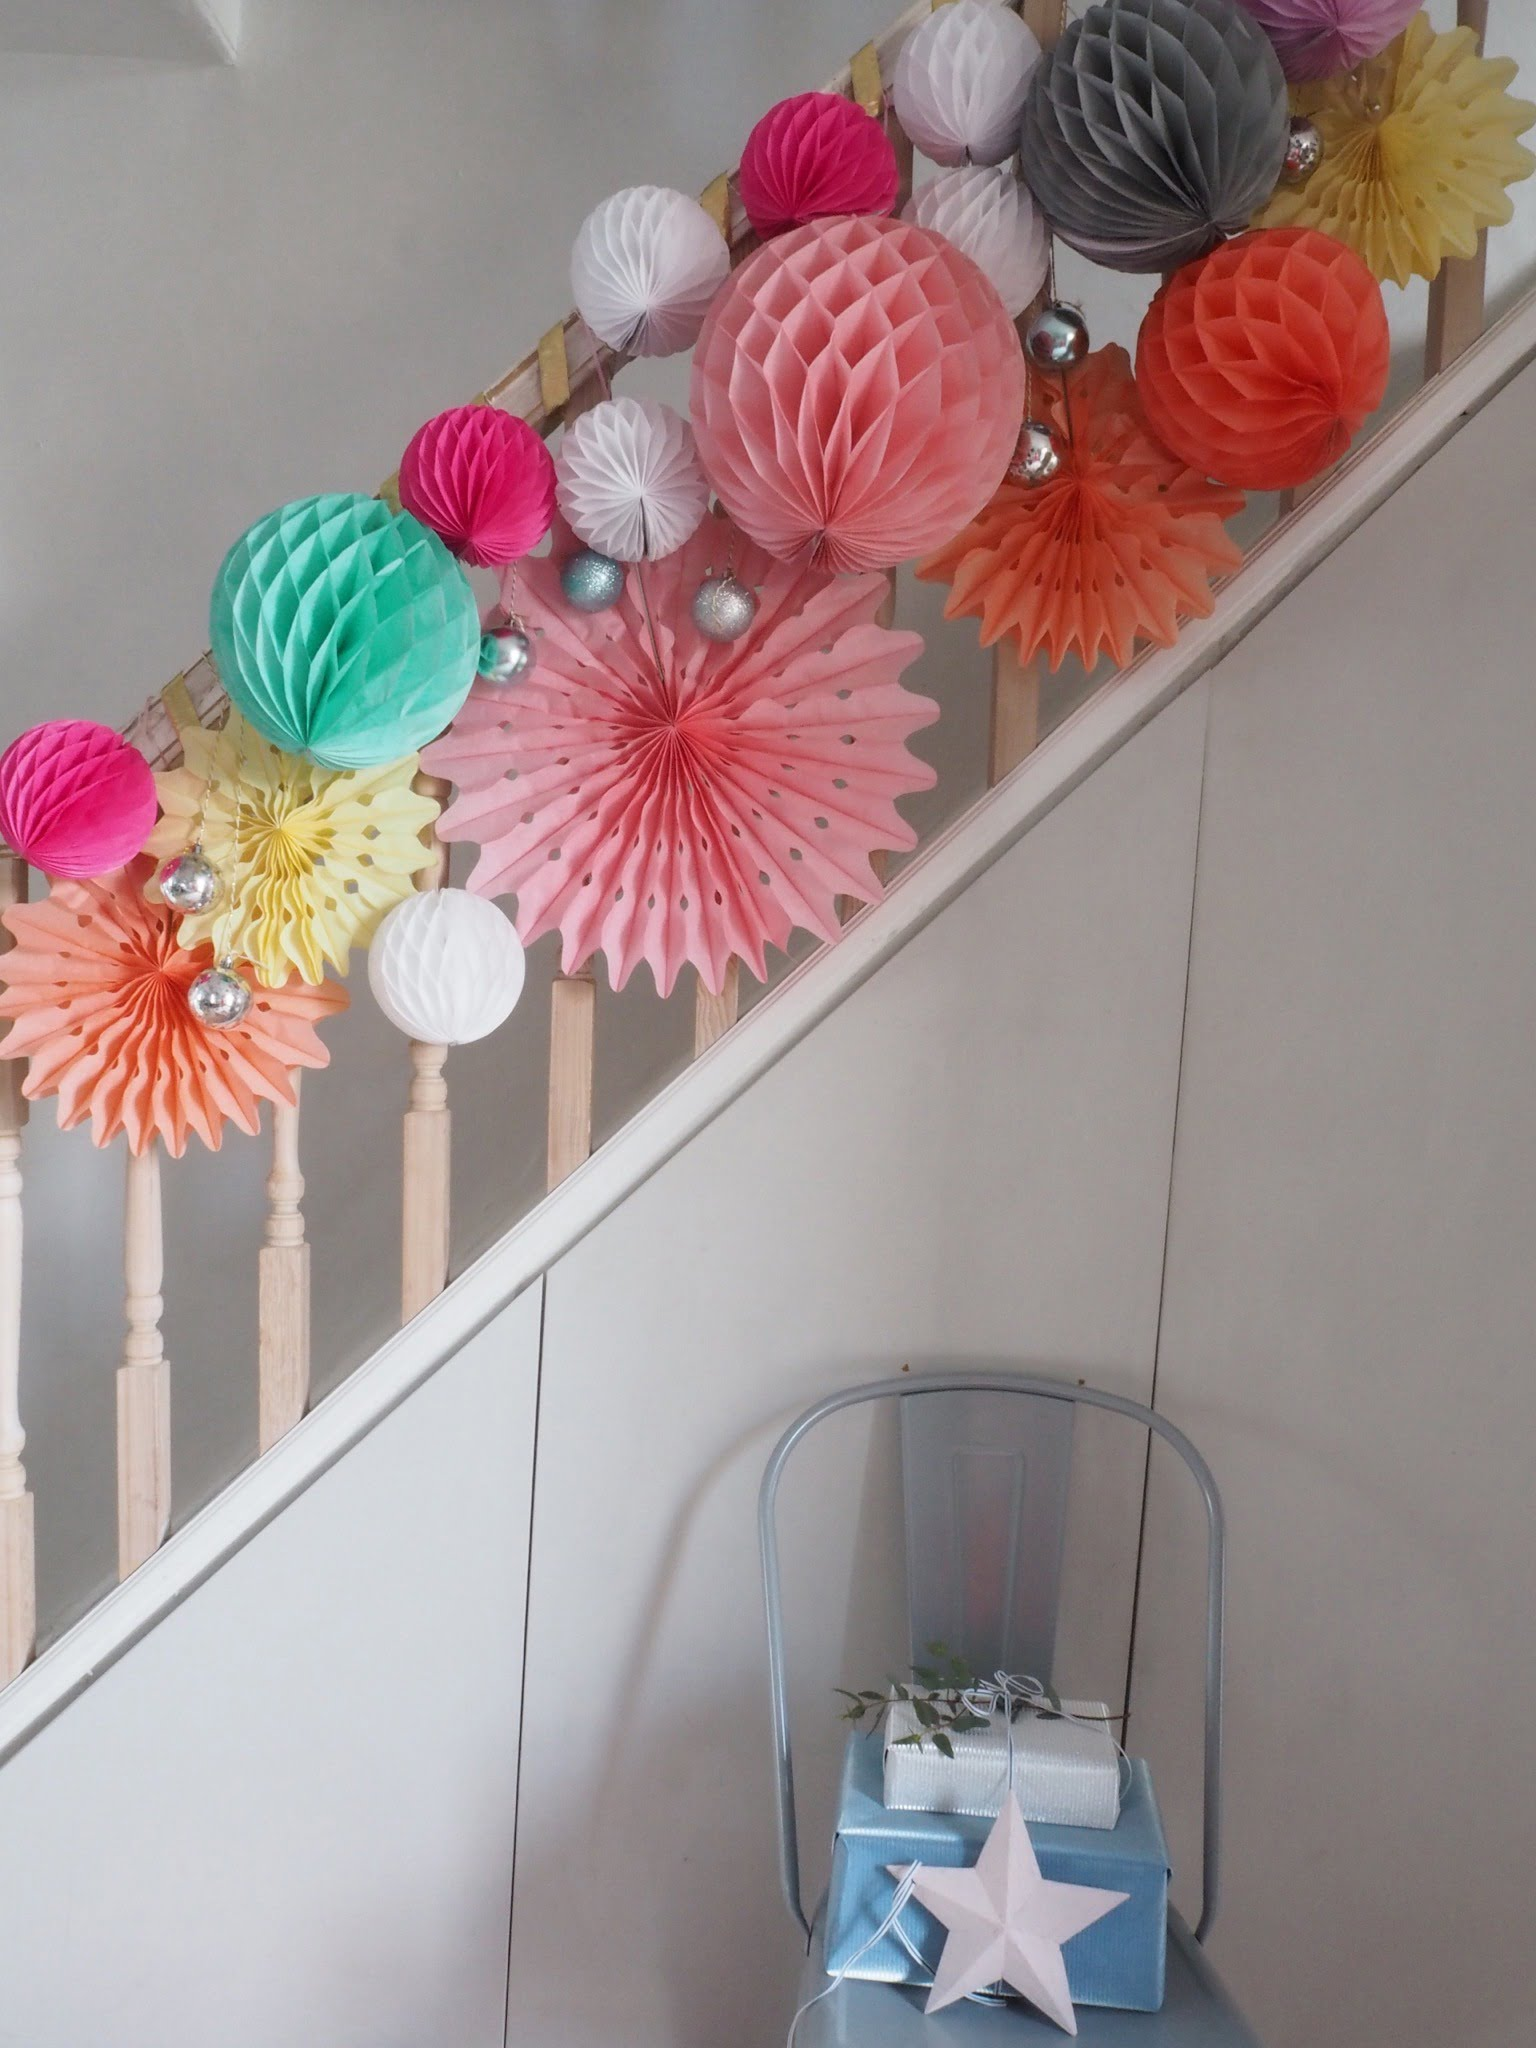 Set the perfect tone for your festive party with this pretty paper garland. It's fun, festive and dead easy to do says interior stylist Maxine Brady.